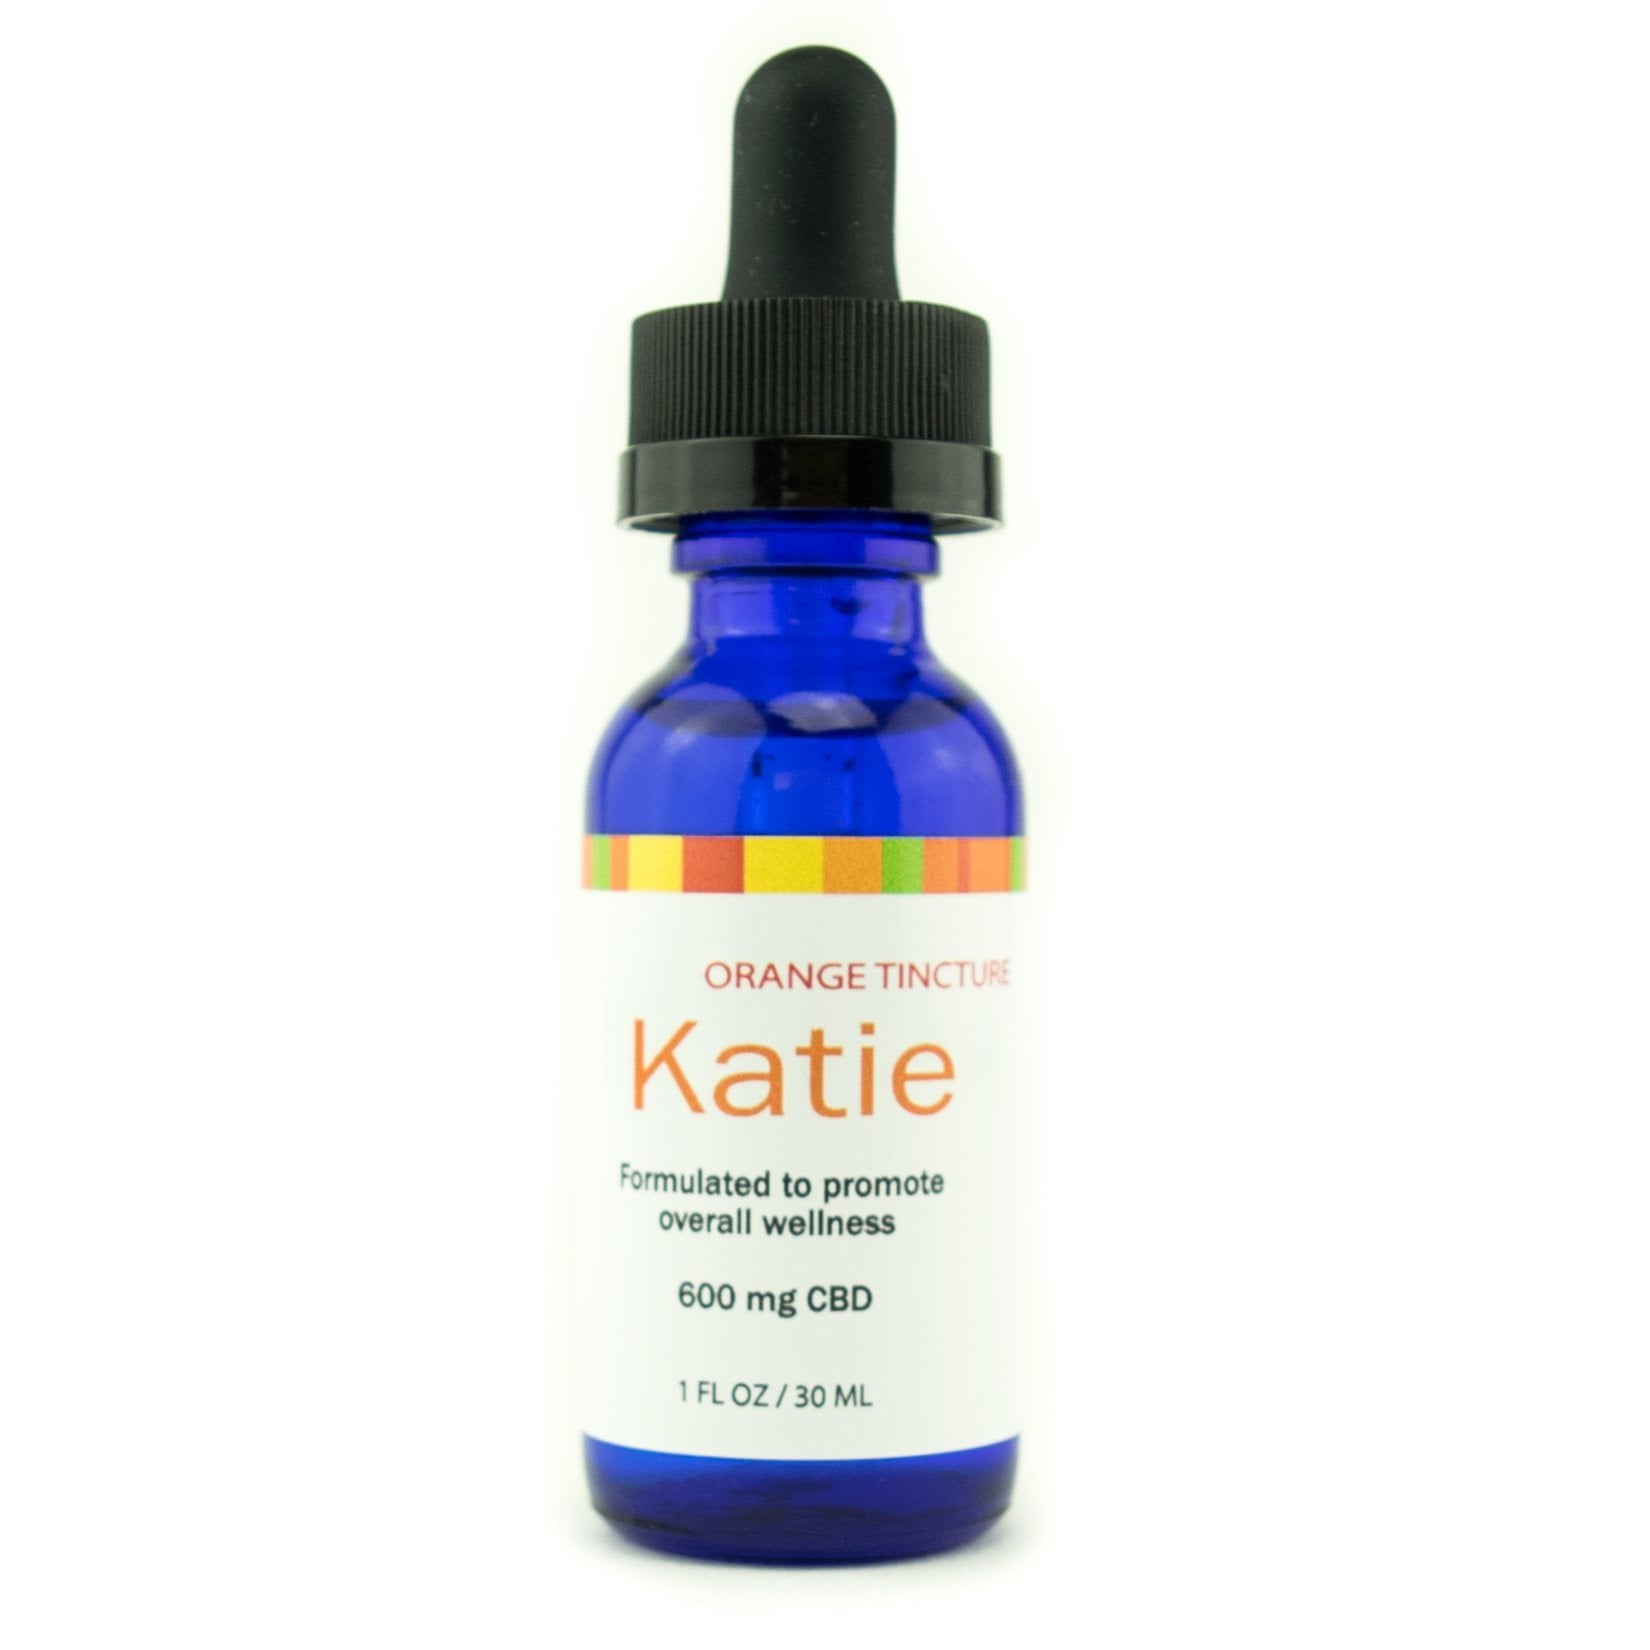 CBD Infused Orange Tincture - Katie!